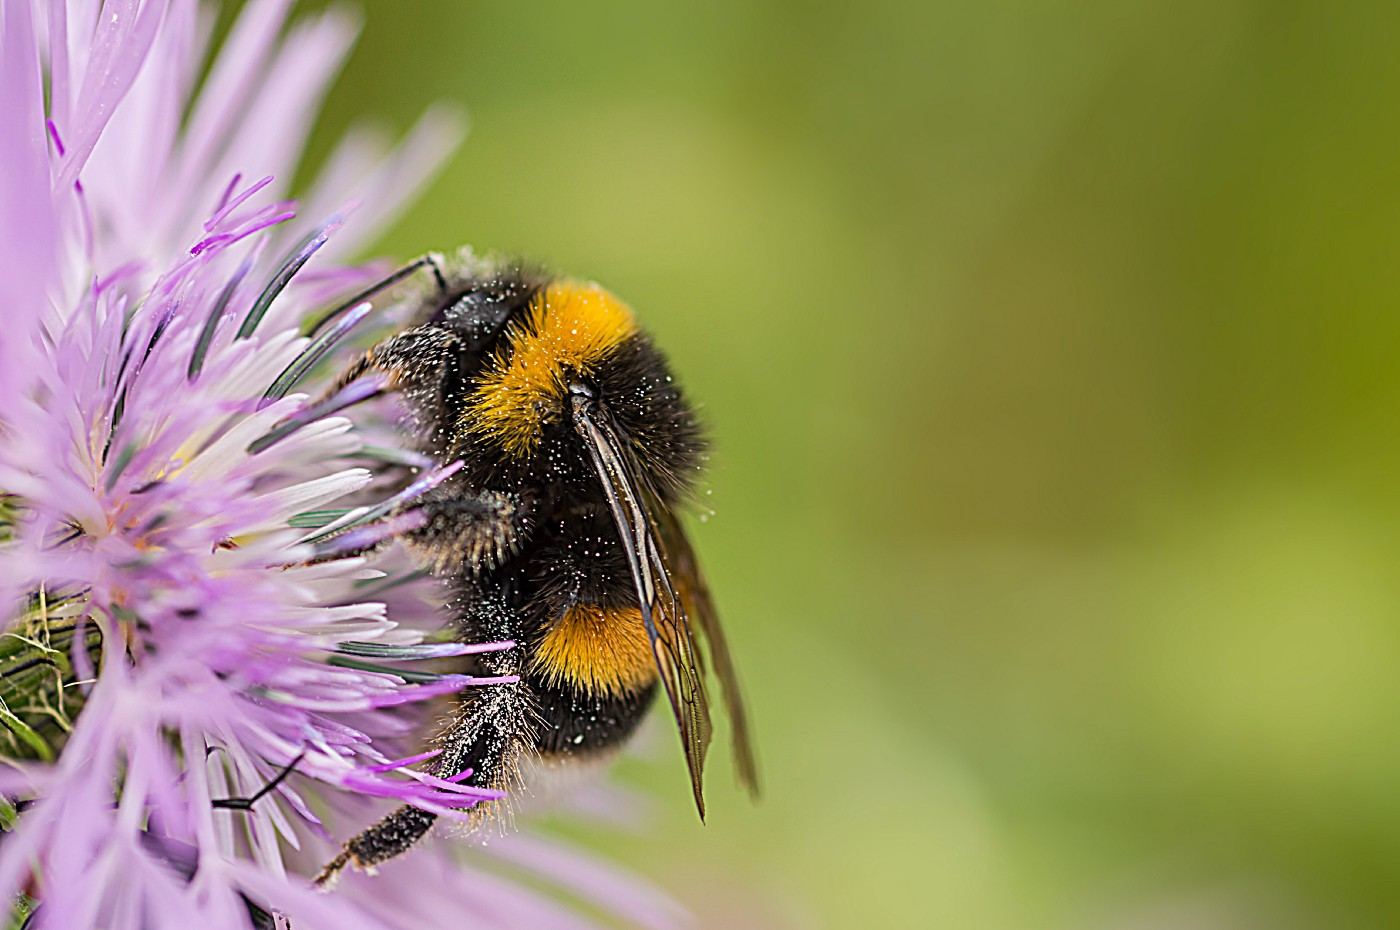 Unsplash photo featuring a bumble bee on a purple thistle-like flower.